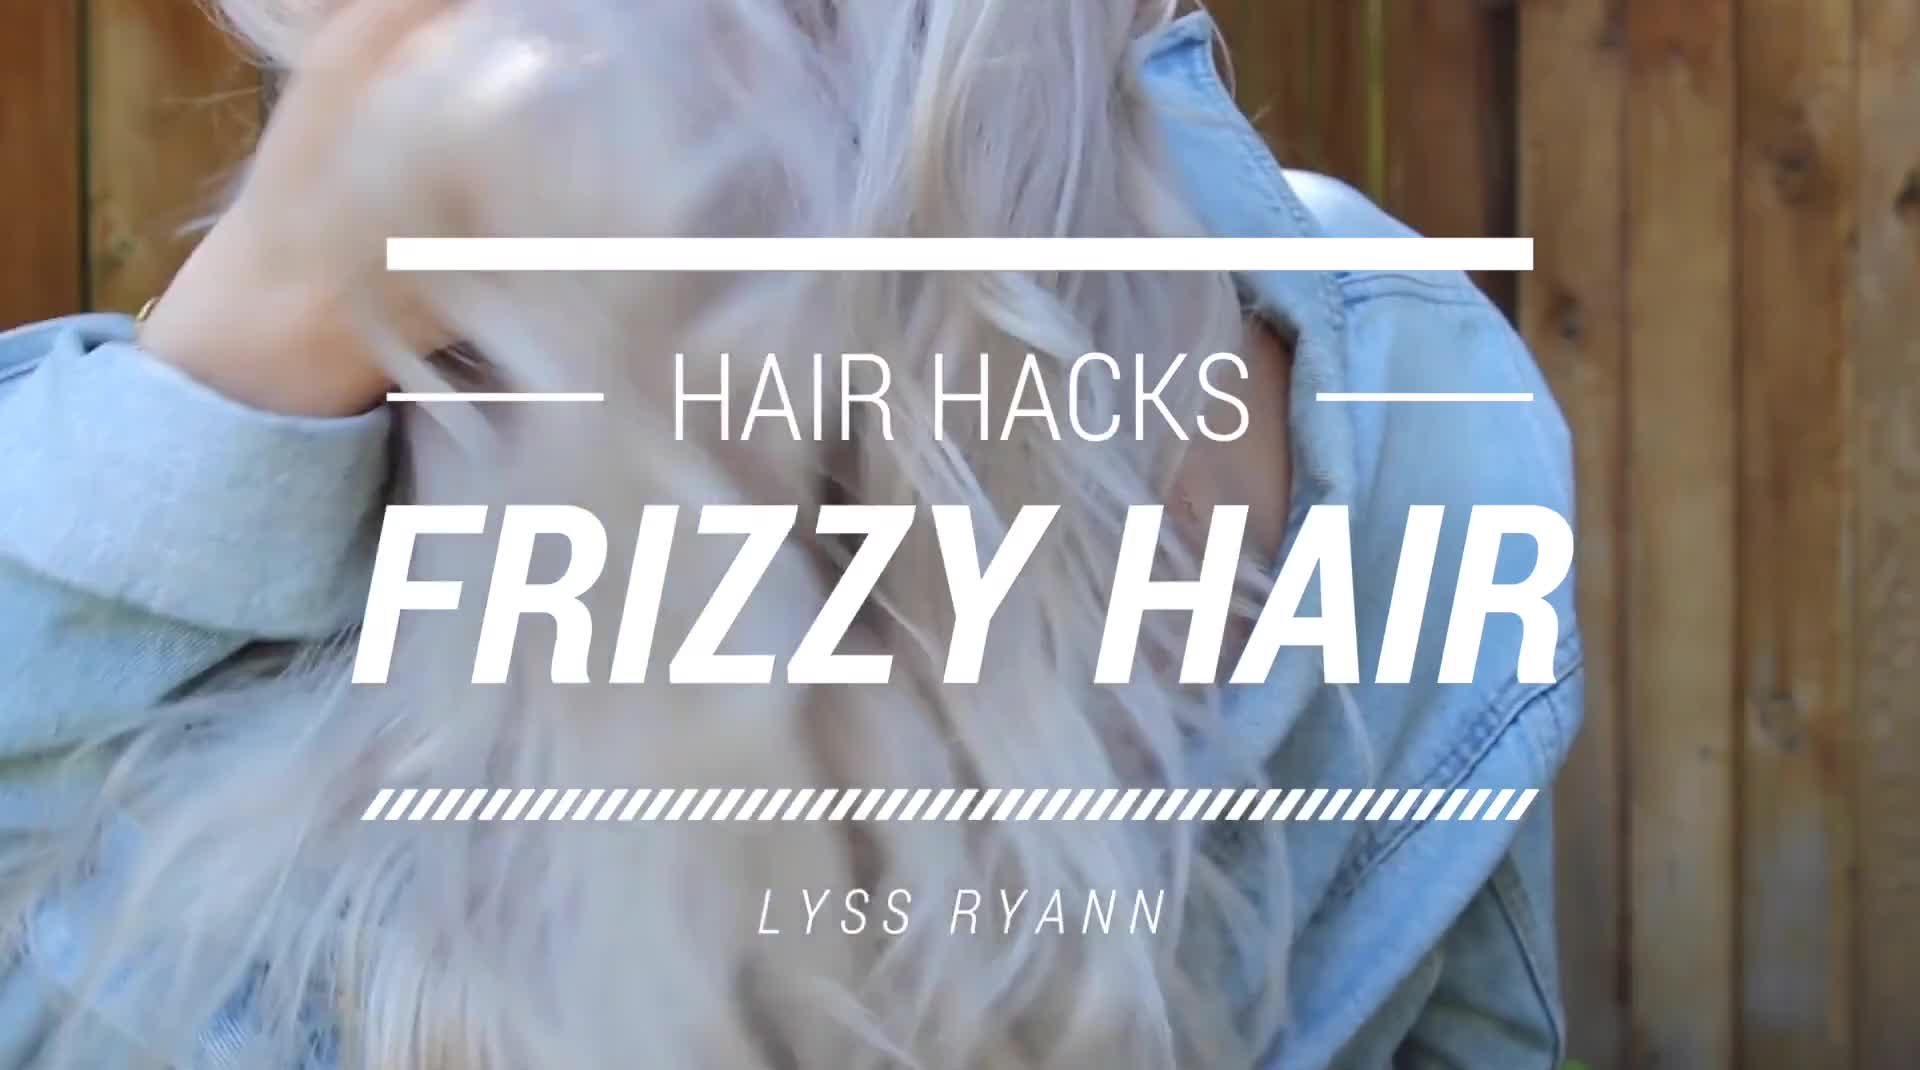 FRIZZY HAIR HACKS! HOW TO FIX FRIZZY HAIR! | LYSSRYANN